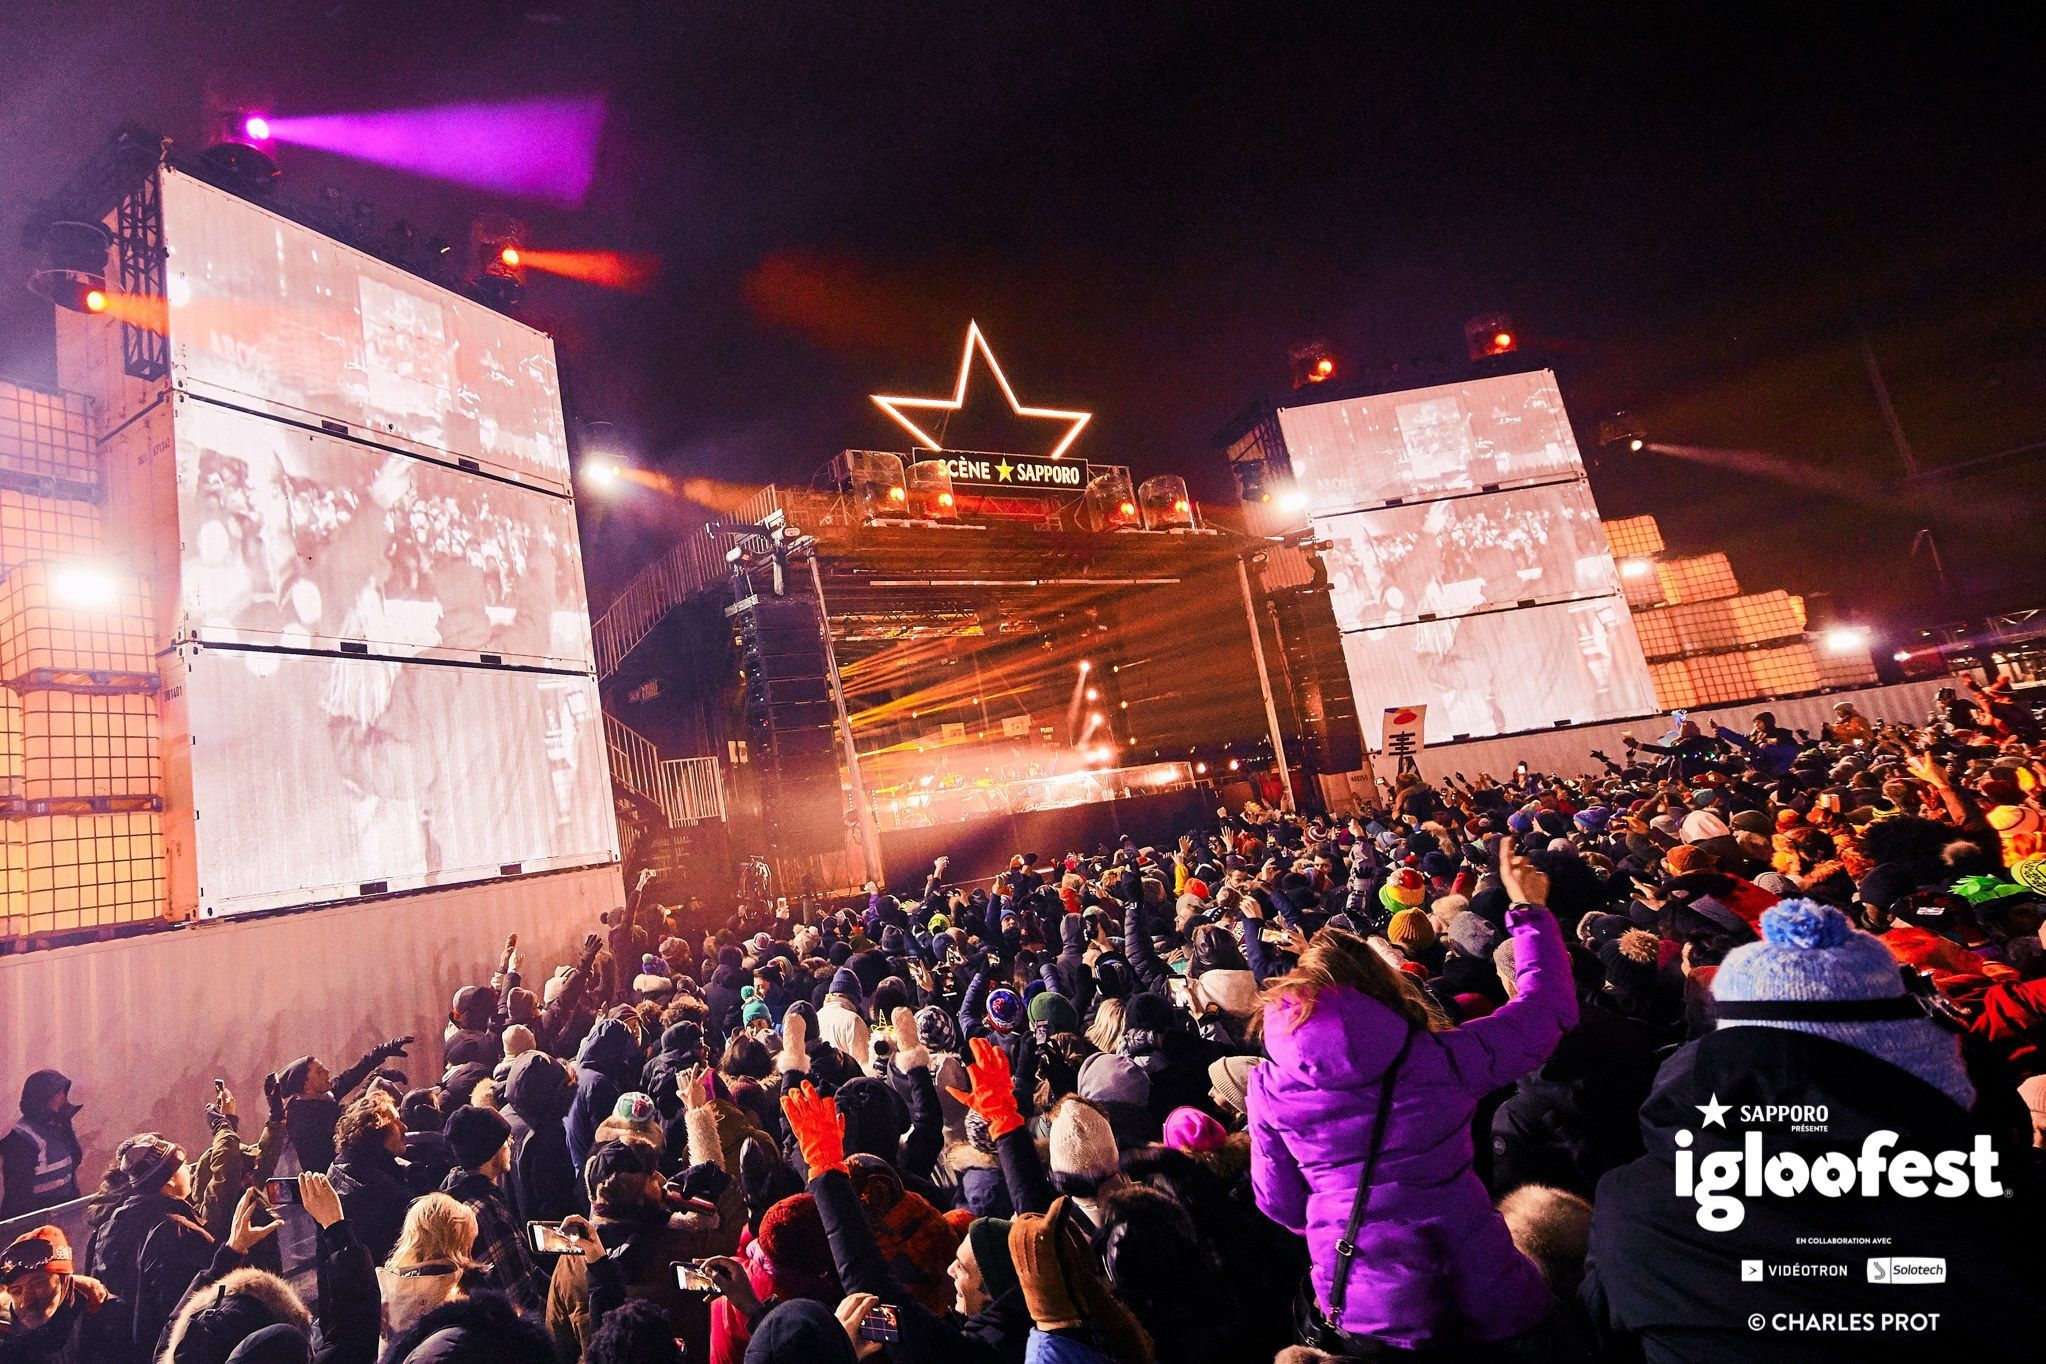 Igloofest Montreal Announces 2020 Season Lineup Including Rufus Du Sol Rezz Zeds Dead And More Nowplaying Summer Music Zeds Dead Festivals Around The World